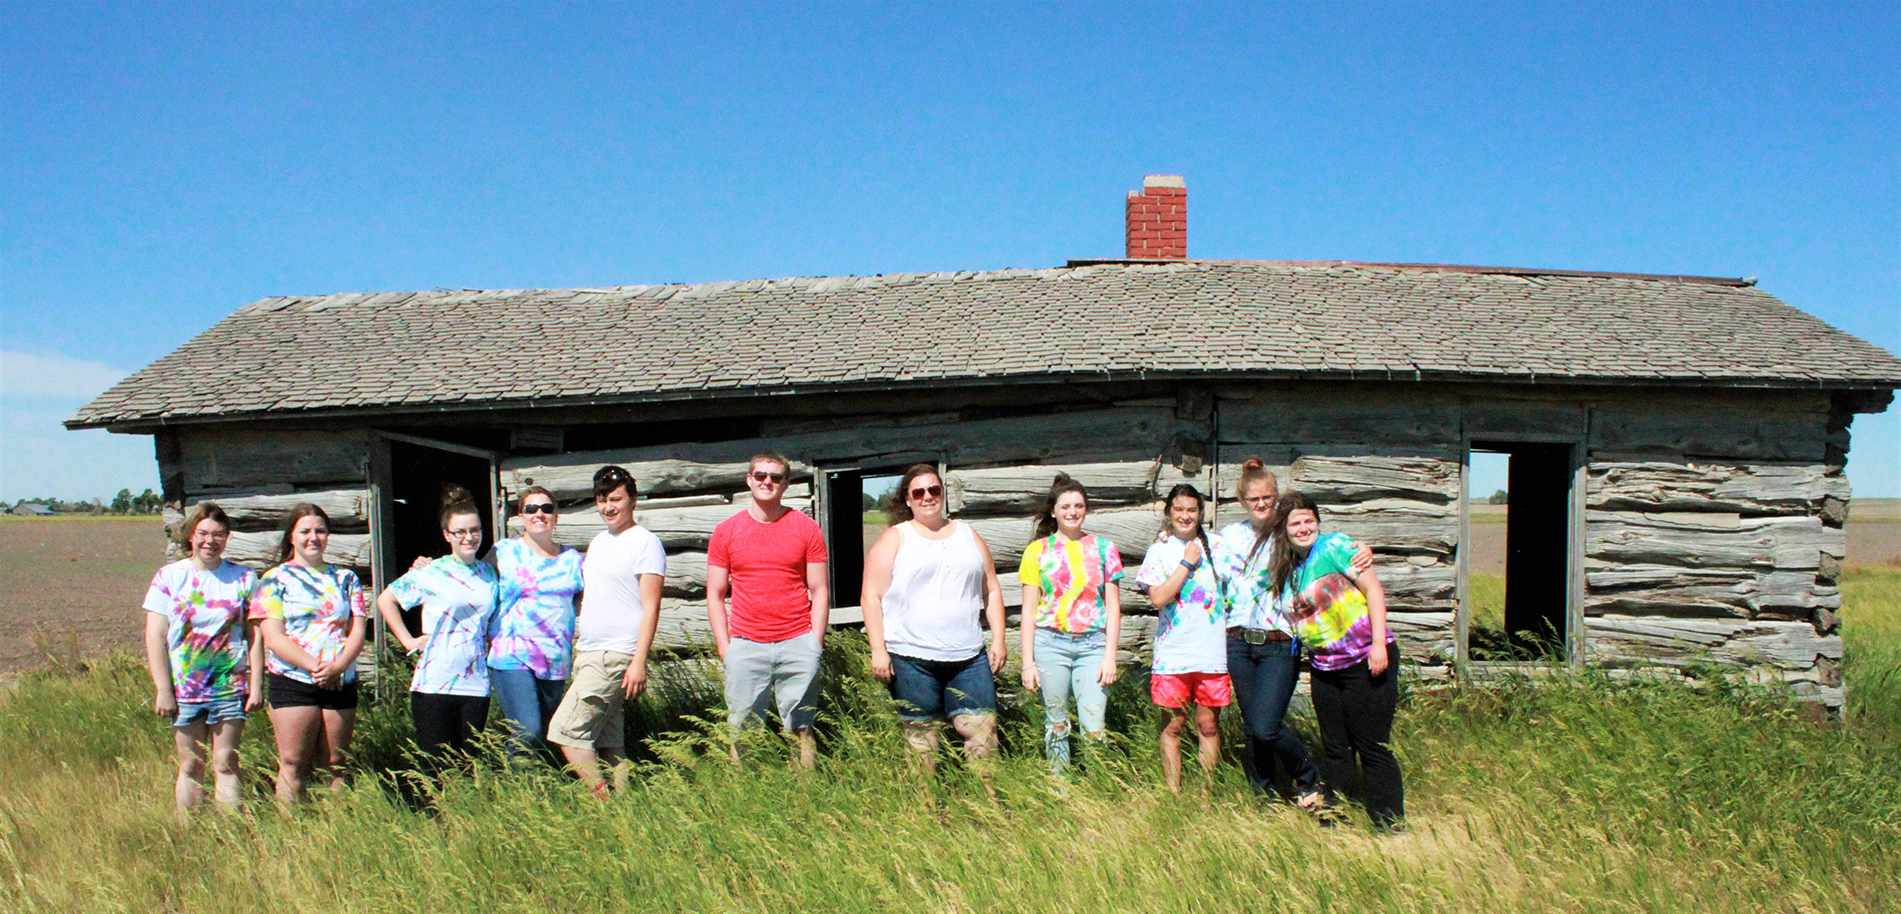 Rural Farm Camps Aim To Prep Youth For Careers In Mental Health